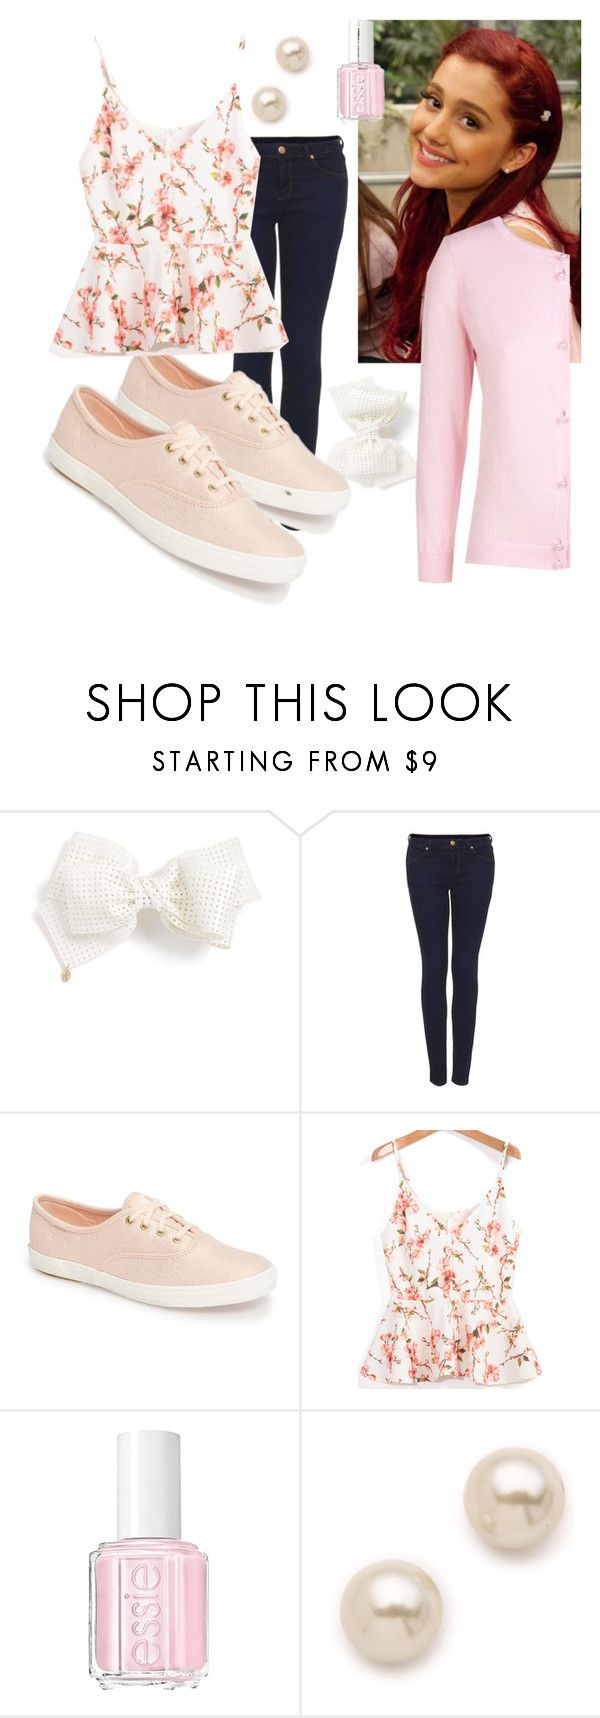 """""""Cat Valentine   (Victorious)"""" by desiremeb ❤ liked on Polyvore featuring Cara Accessories, Topshop, Keds, Essie, Juliet & Company and Xandres xline"""